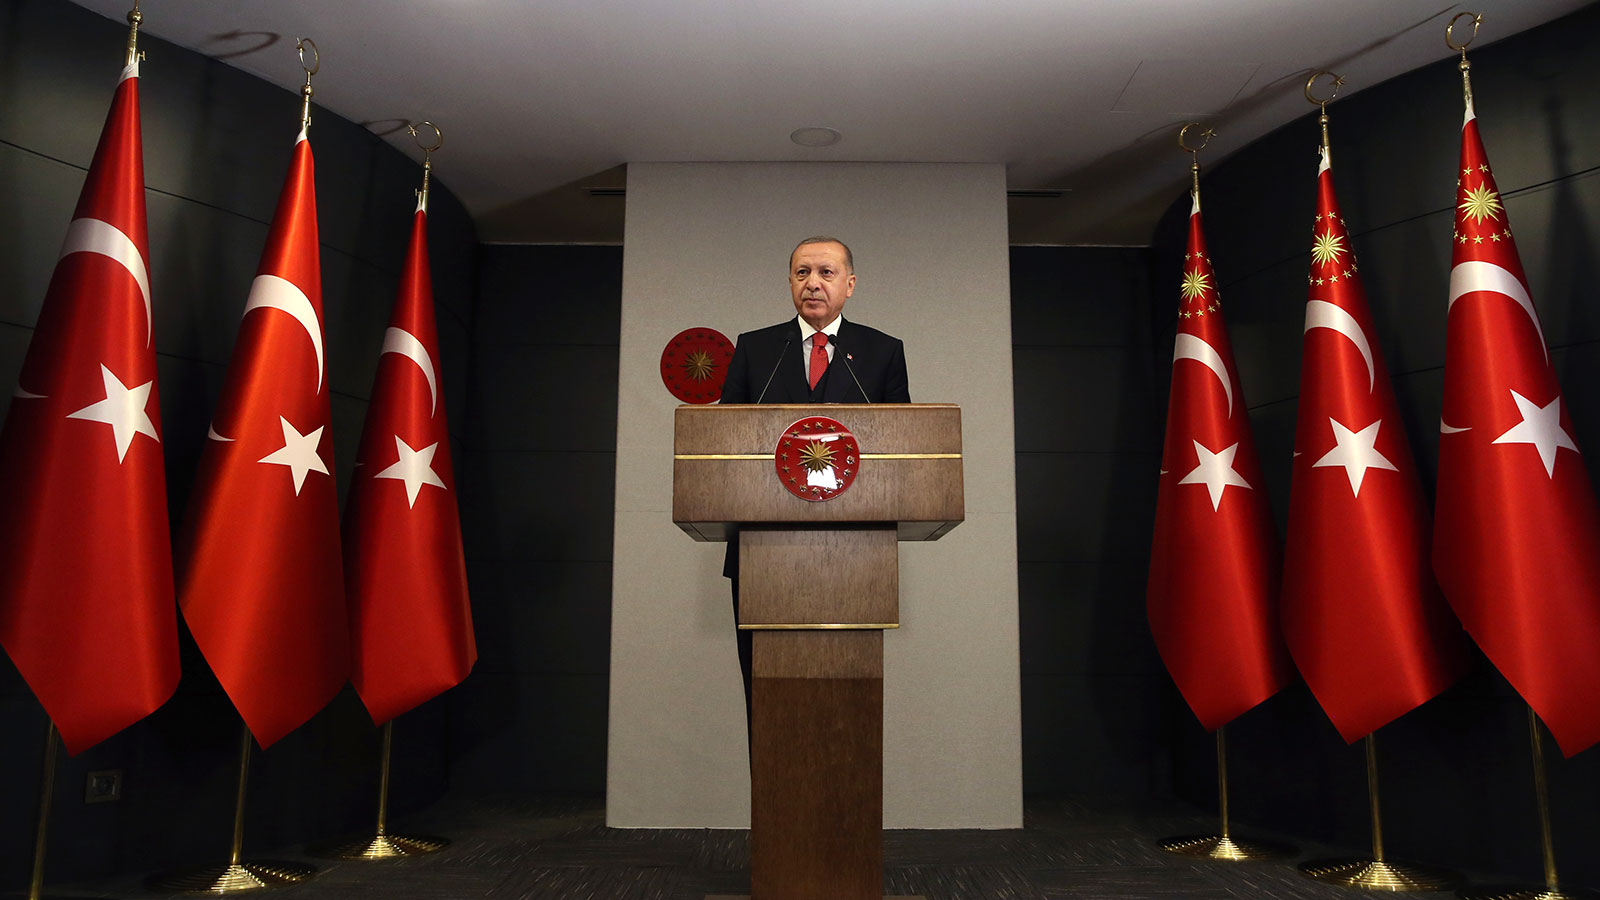 Turkish President Recep Tayyip Erdogan speaks during a news conference after a cabinet meeting via videoconferencing in Istanbul, Turkey on April 20.